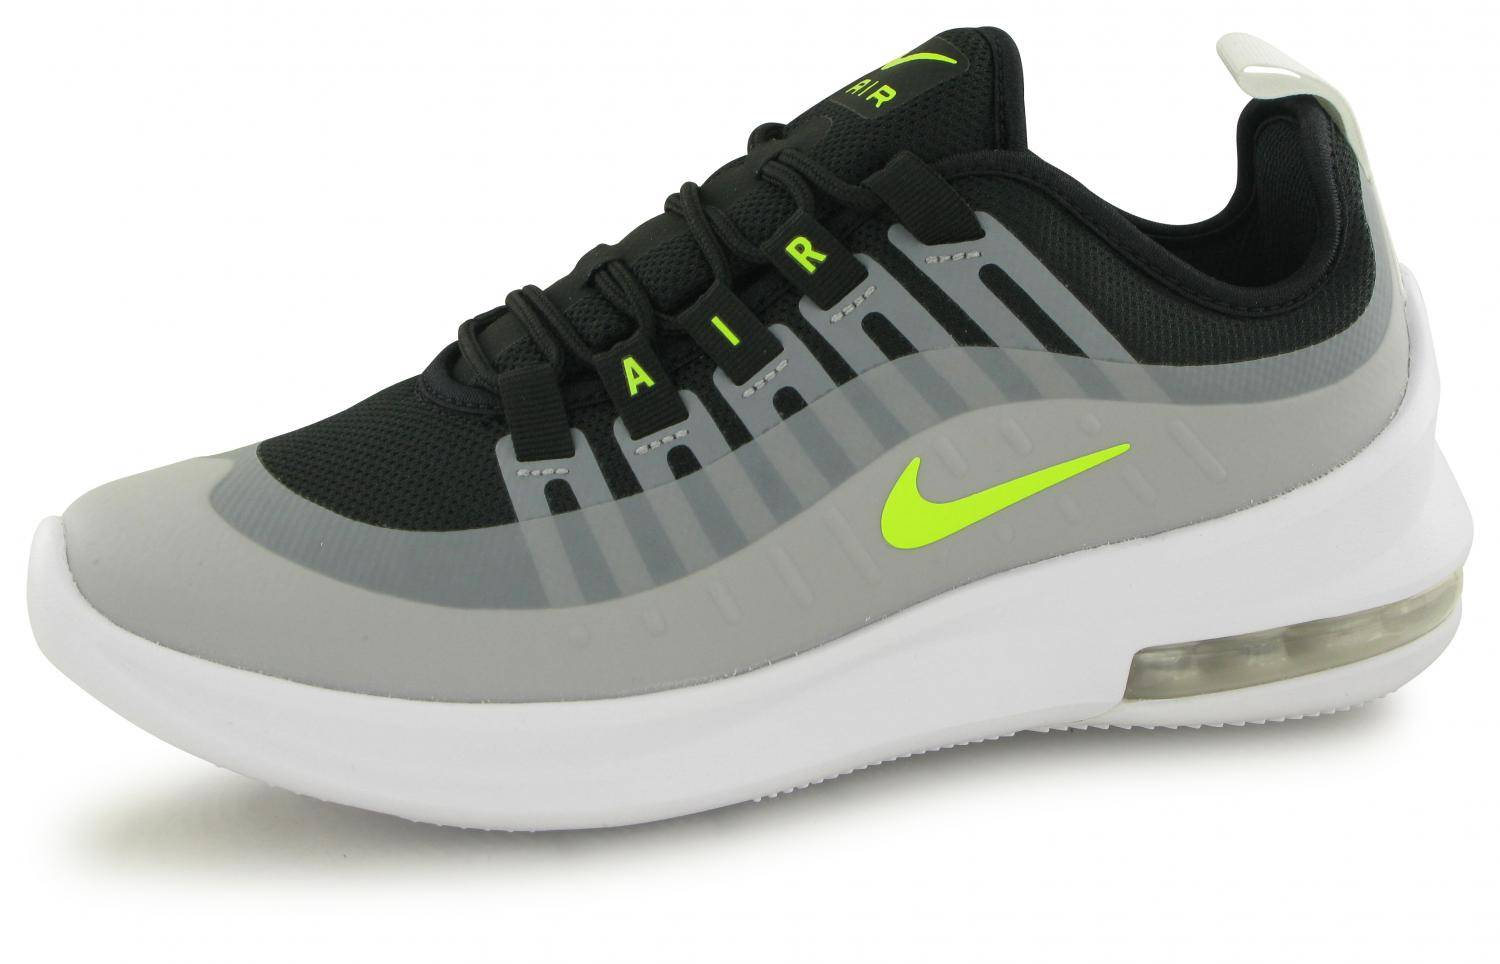 Nike Max Noir Jaune Axis Gris Junior Air ywPNnvm0O8